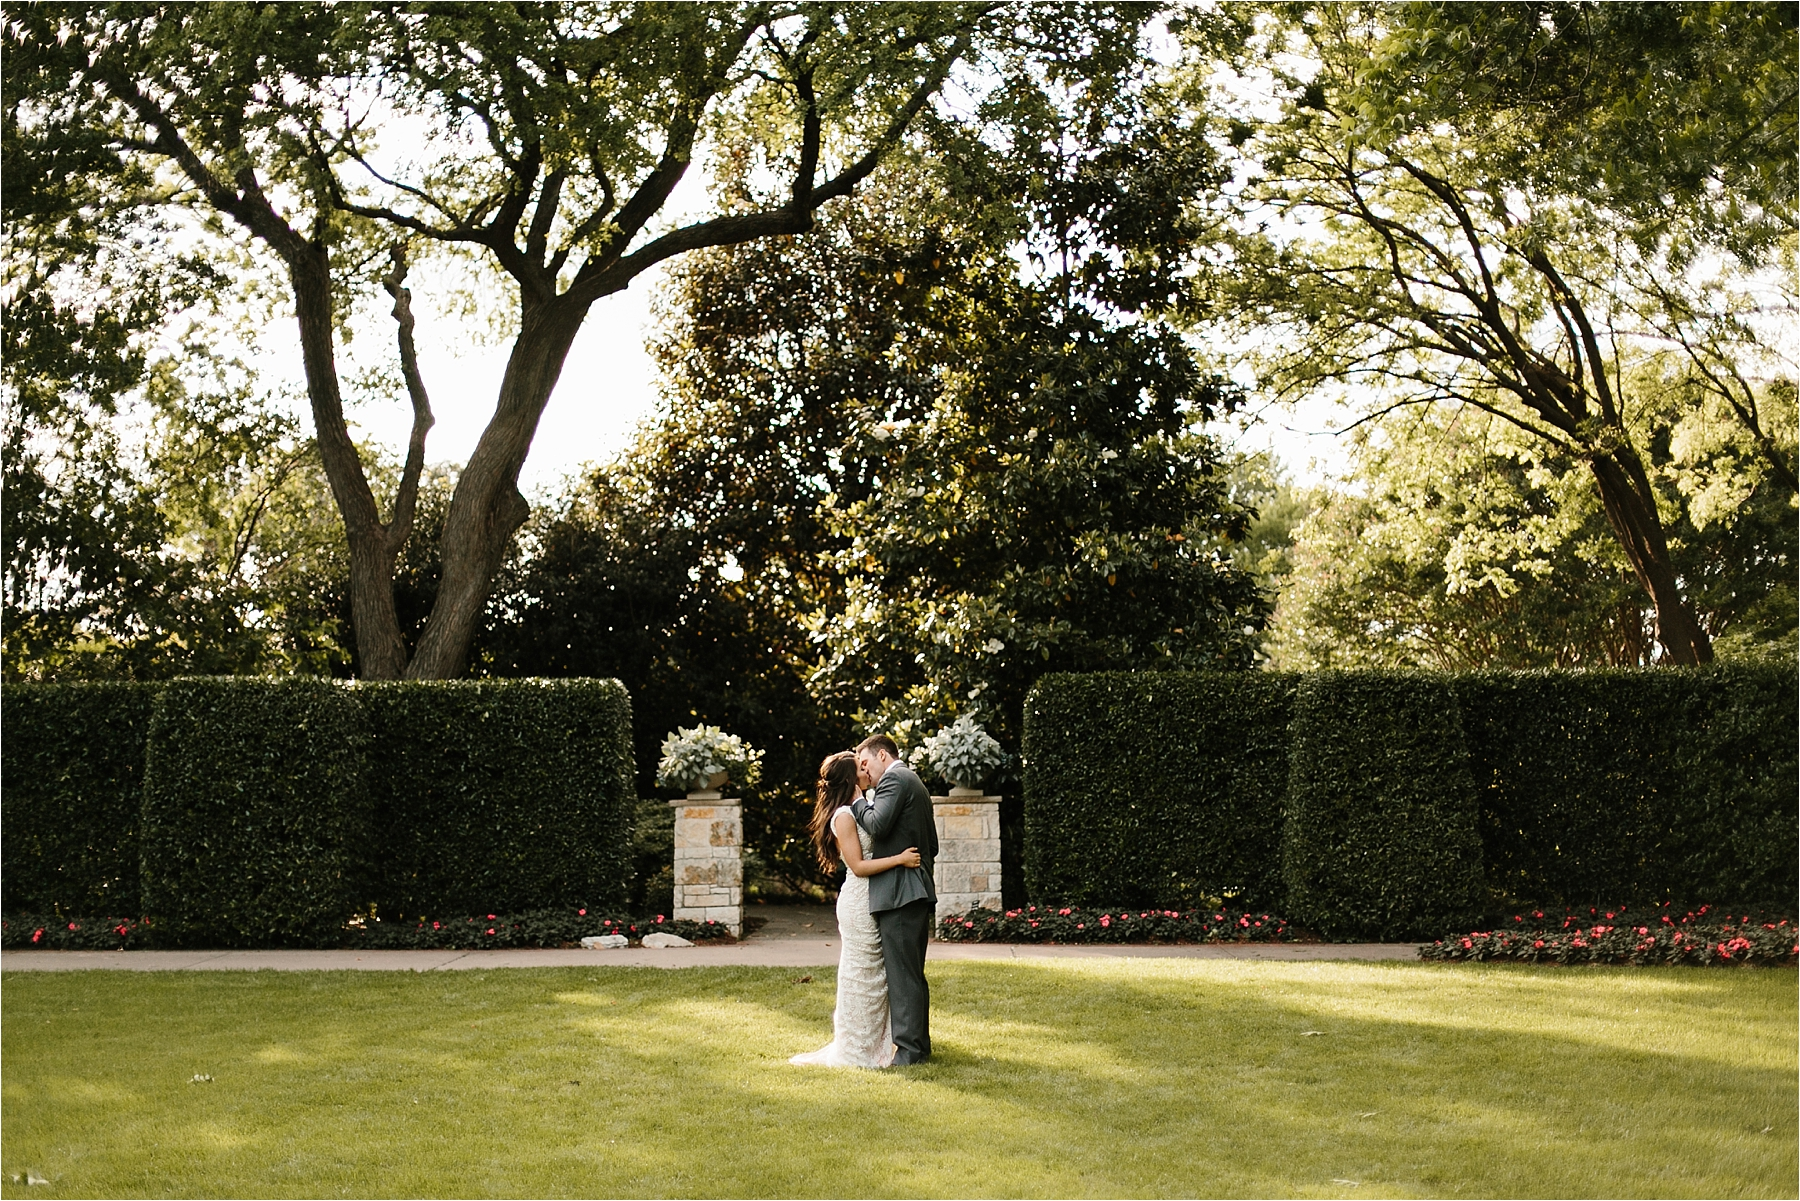 Devyn + Caden __ a Dallas Arboretum Garden Style Wedding by North Texas Wedding Photographer Rachel Meagan Photography __ 085